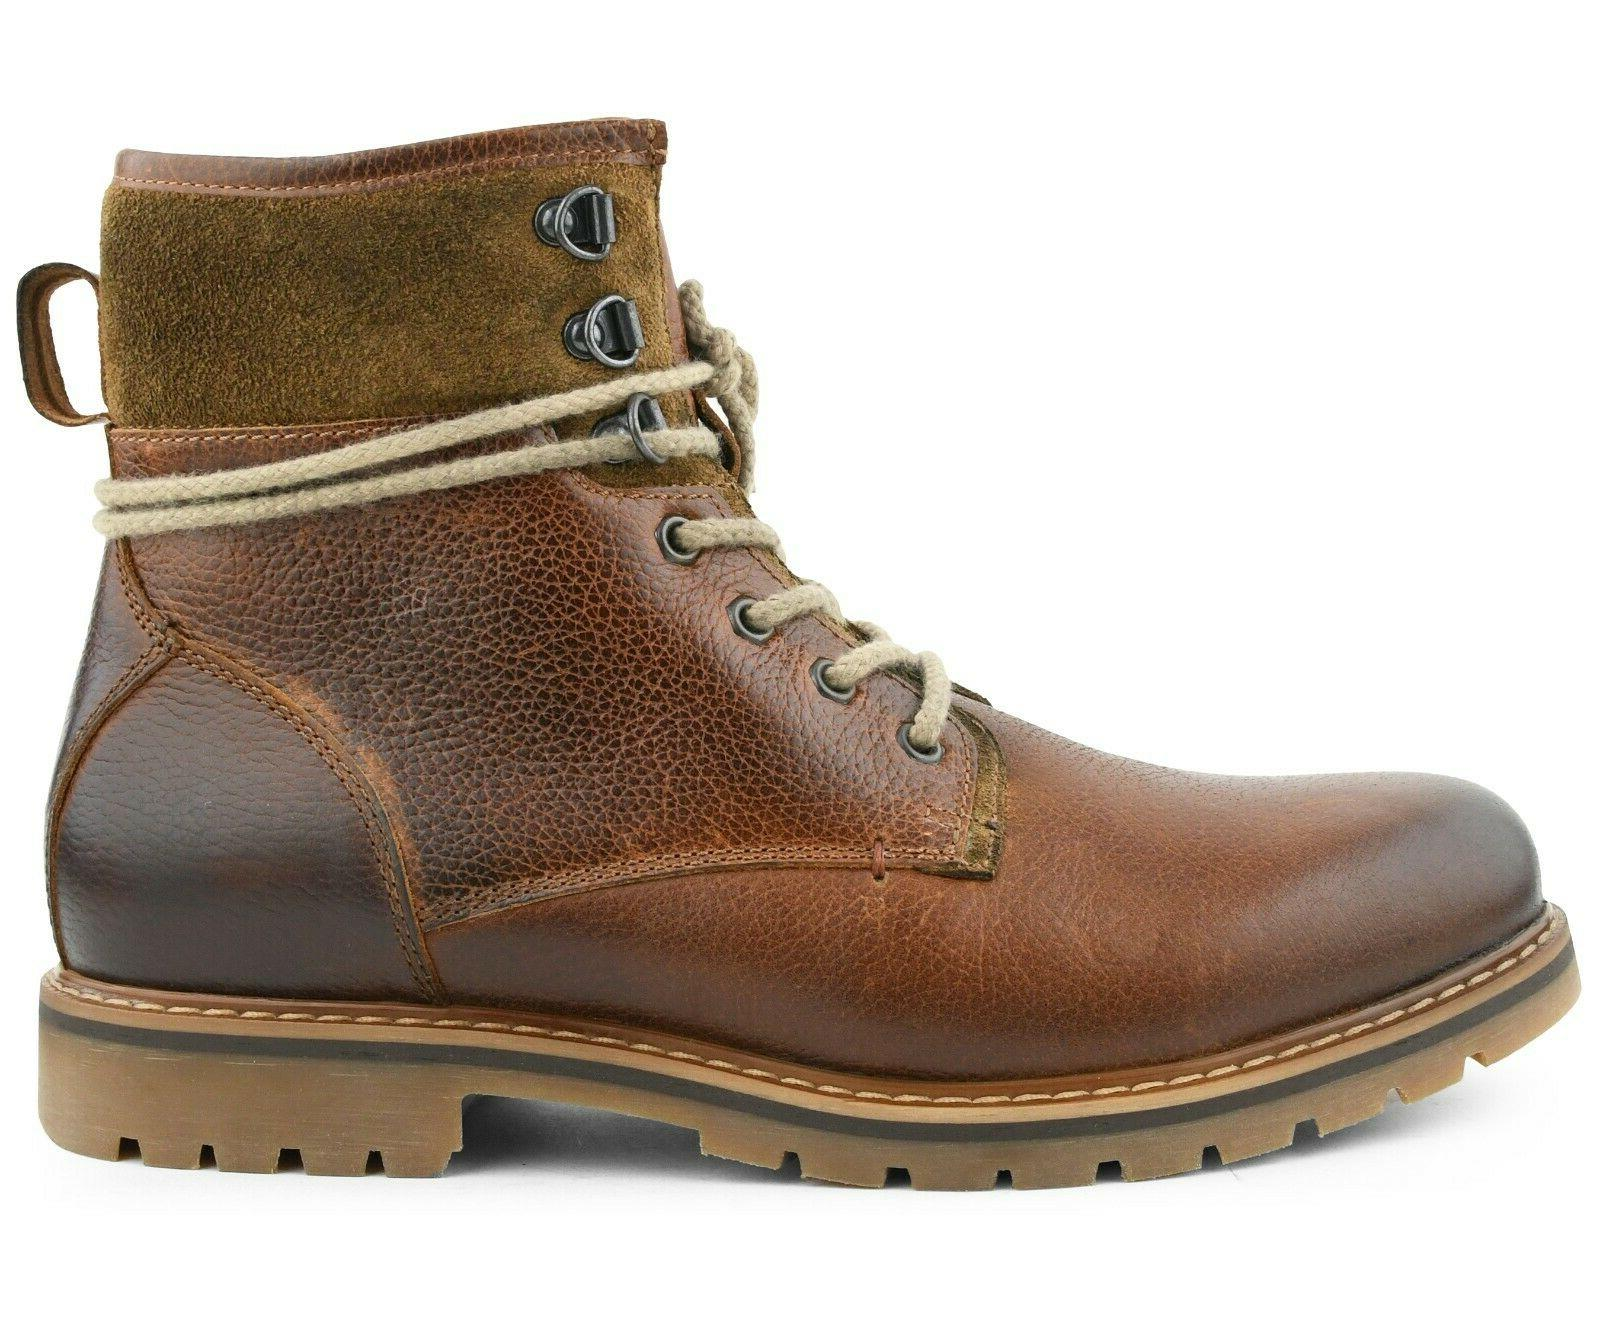 Genuine Leather Boots for Work